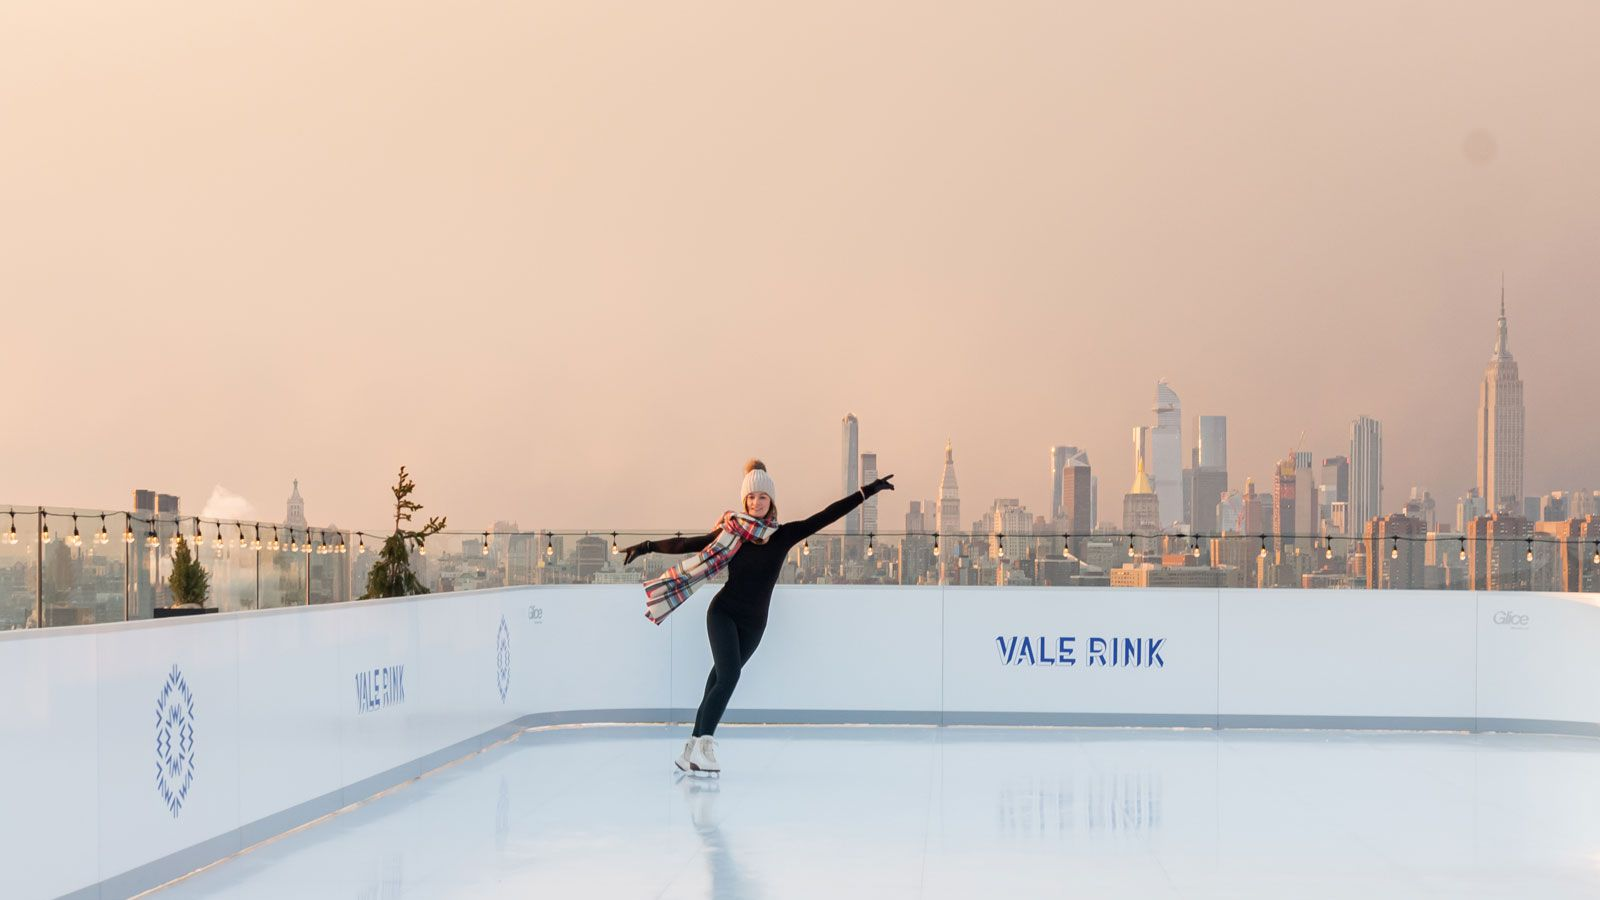 Ice Skater at The William Vale Hotel Rooftop Ice Skating Rink